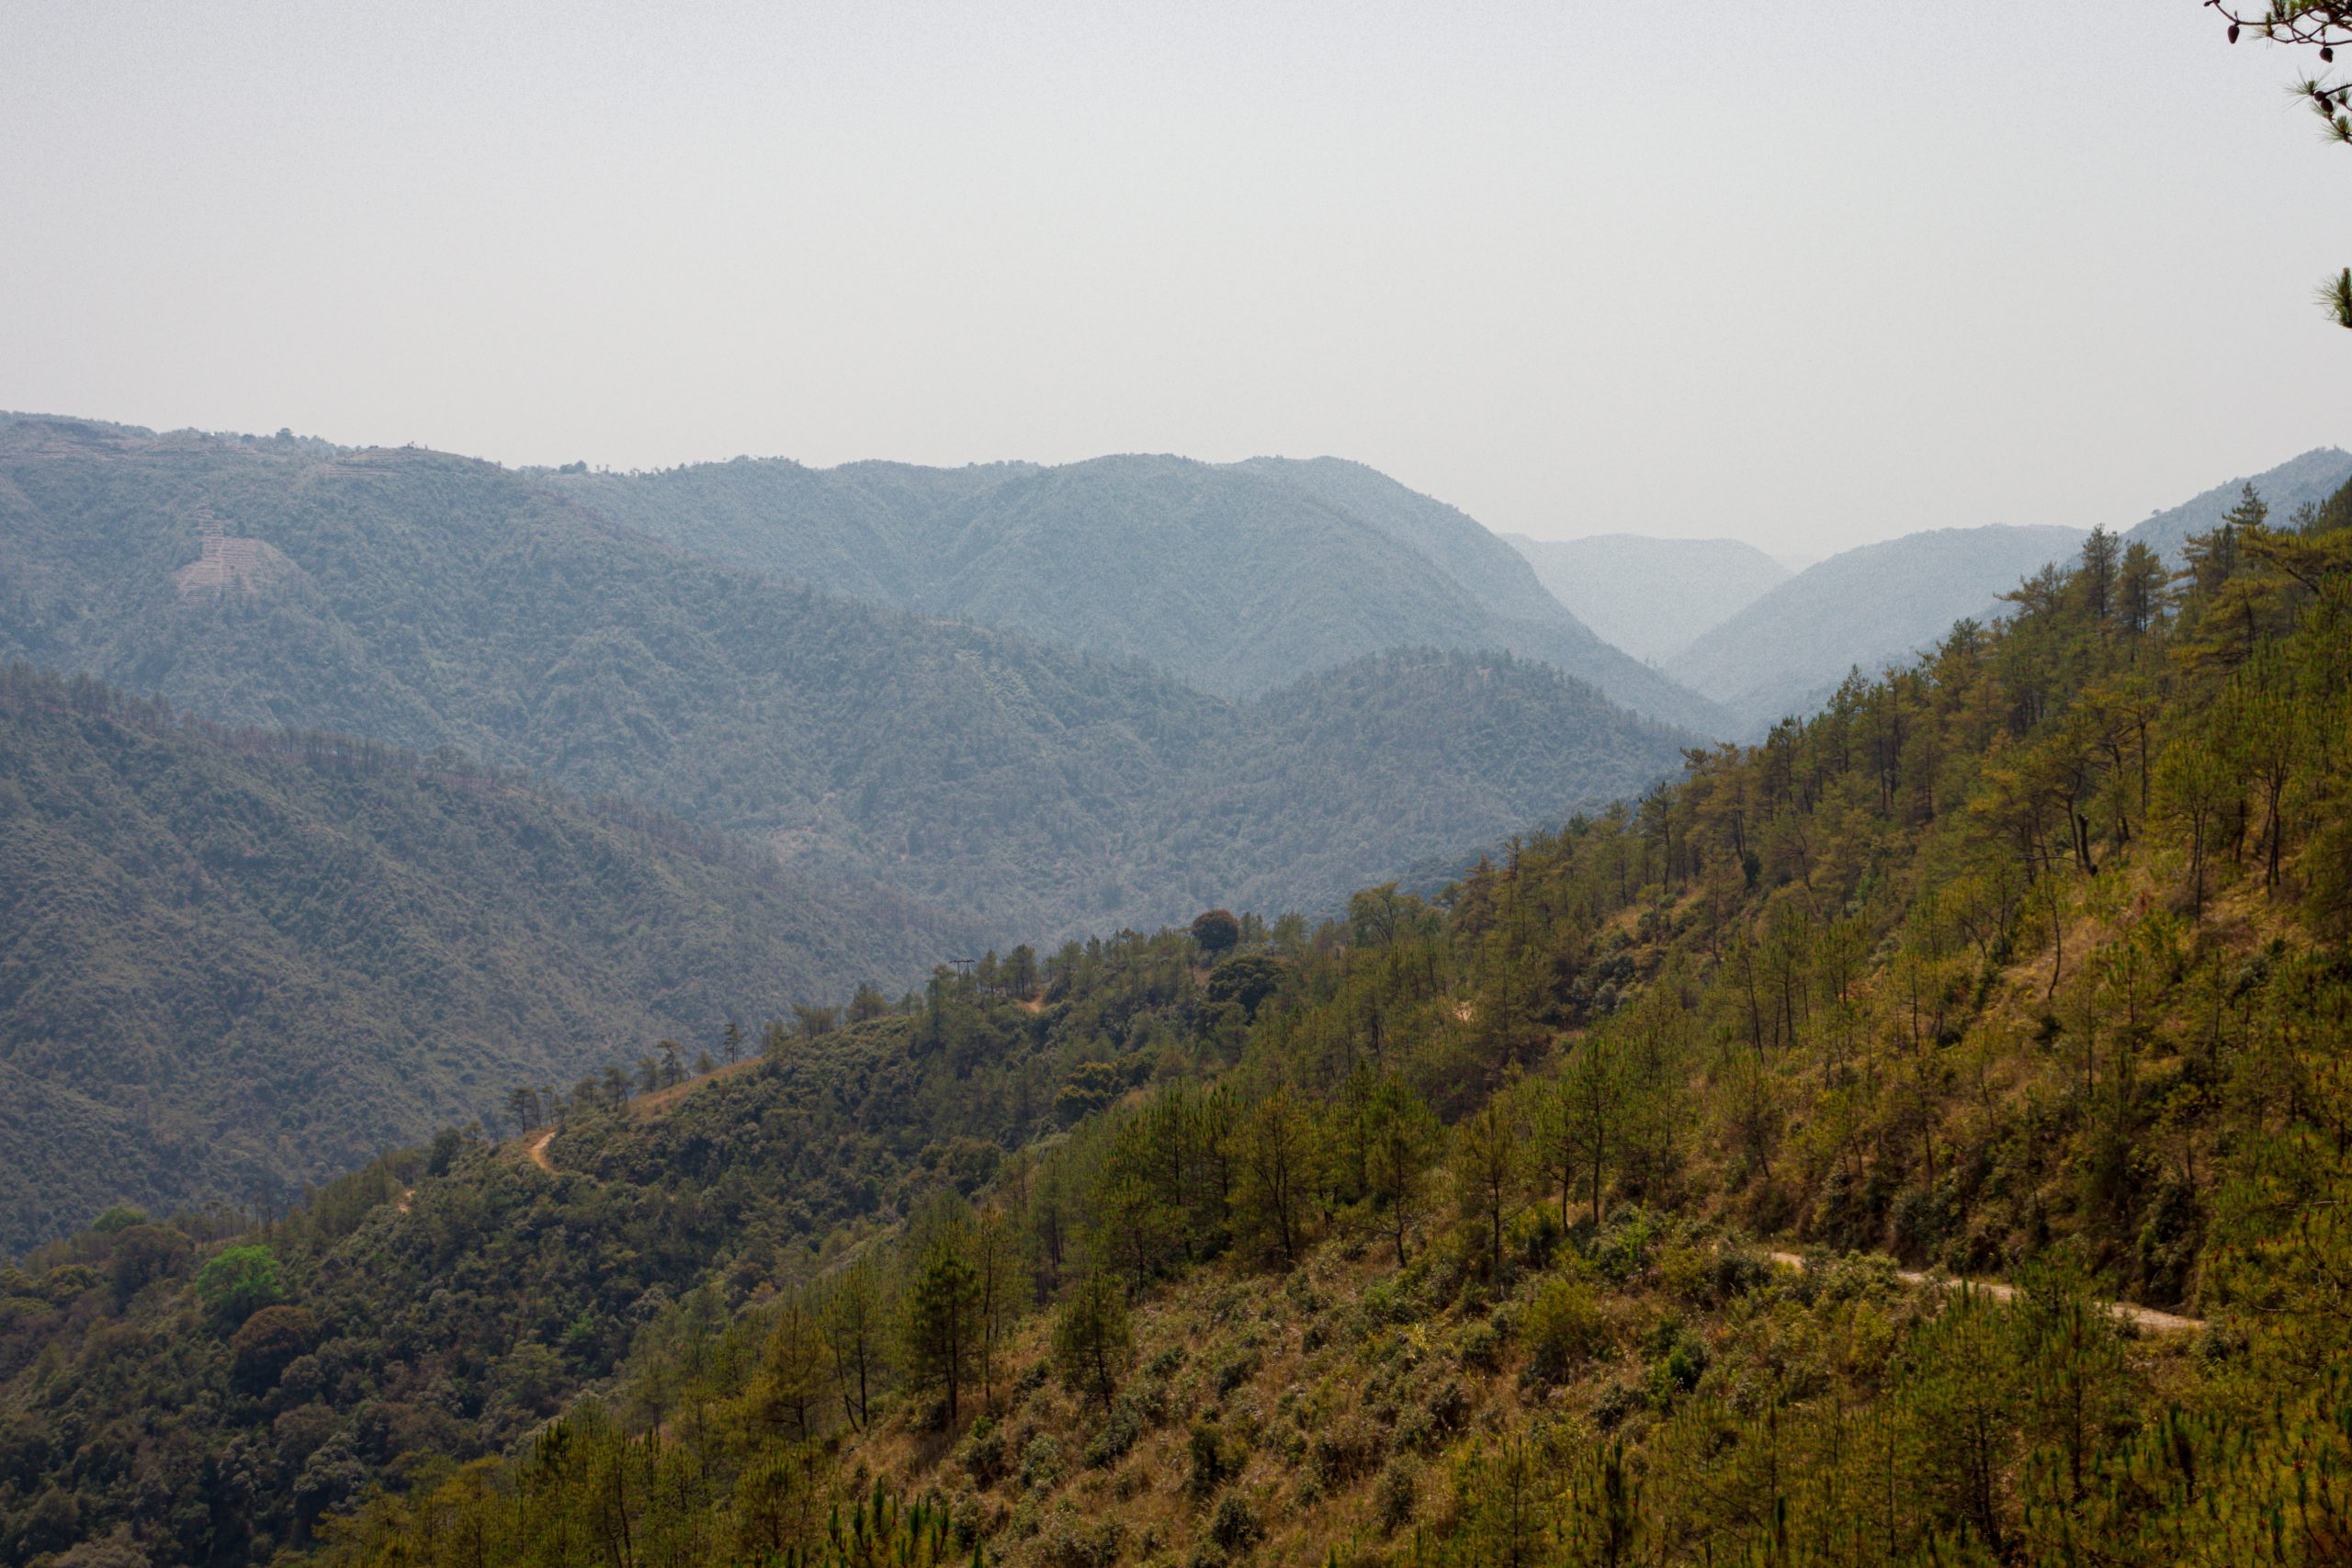 Greenery of mountains